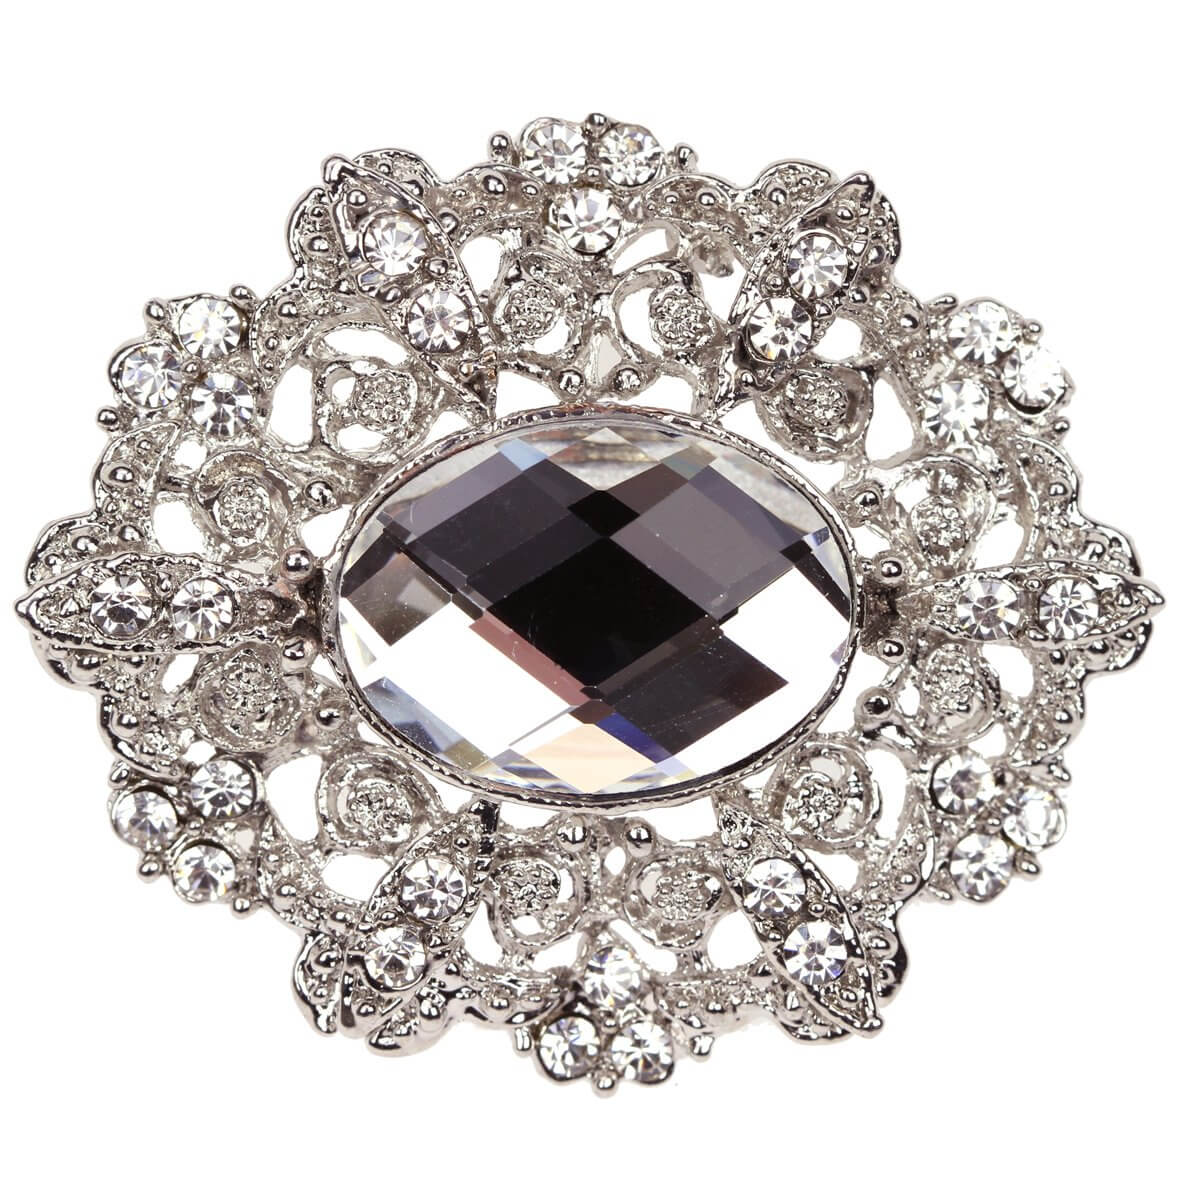 Marquise - an elegant wedding brooch